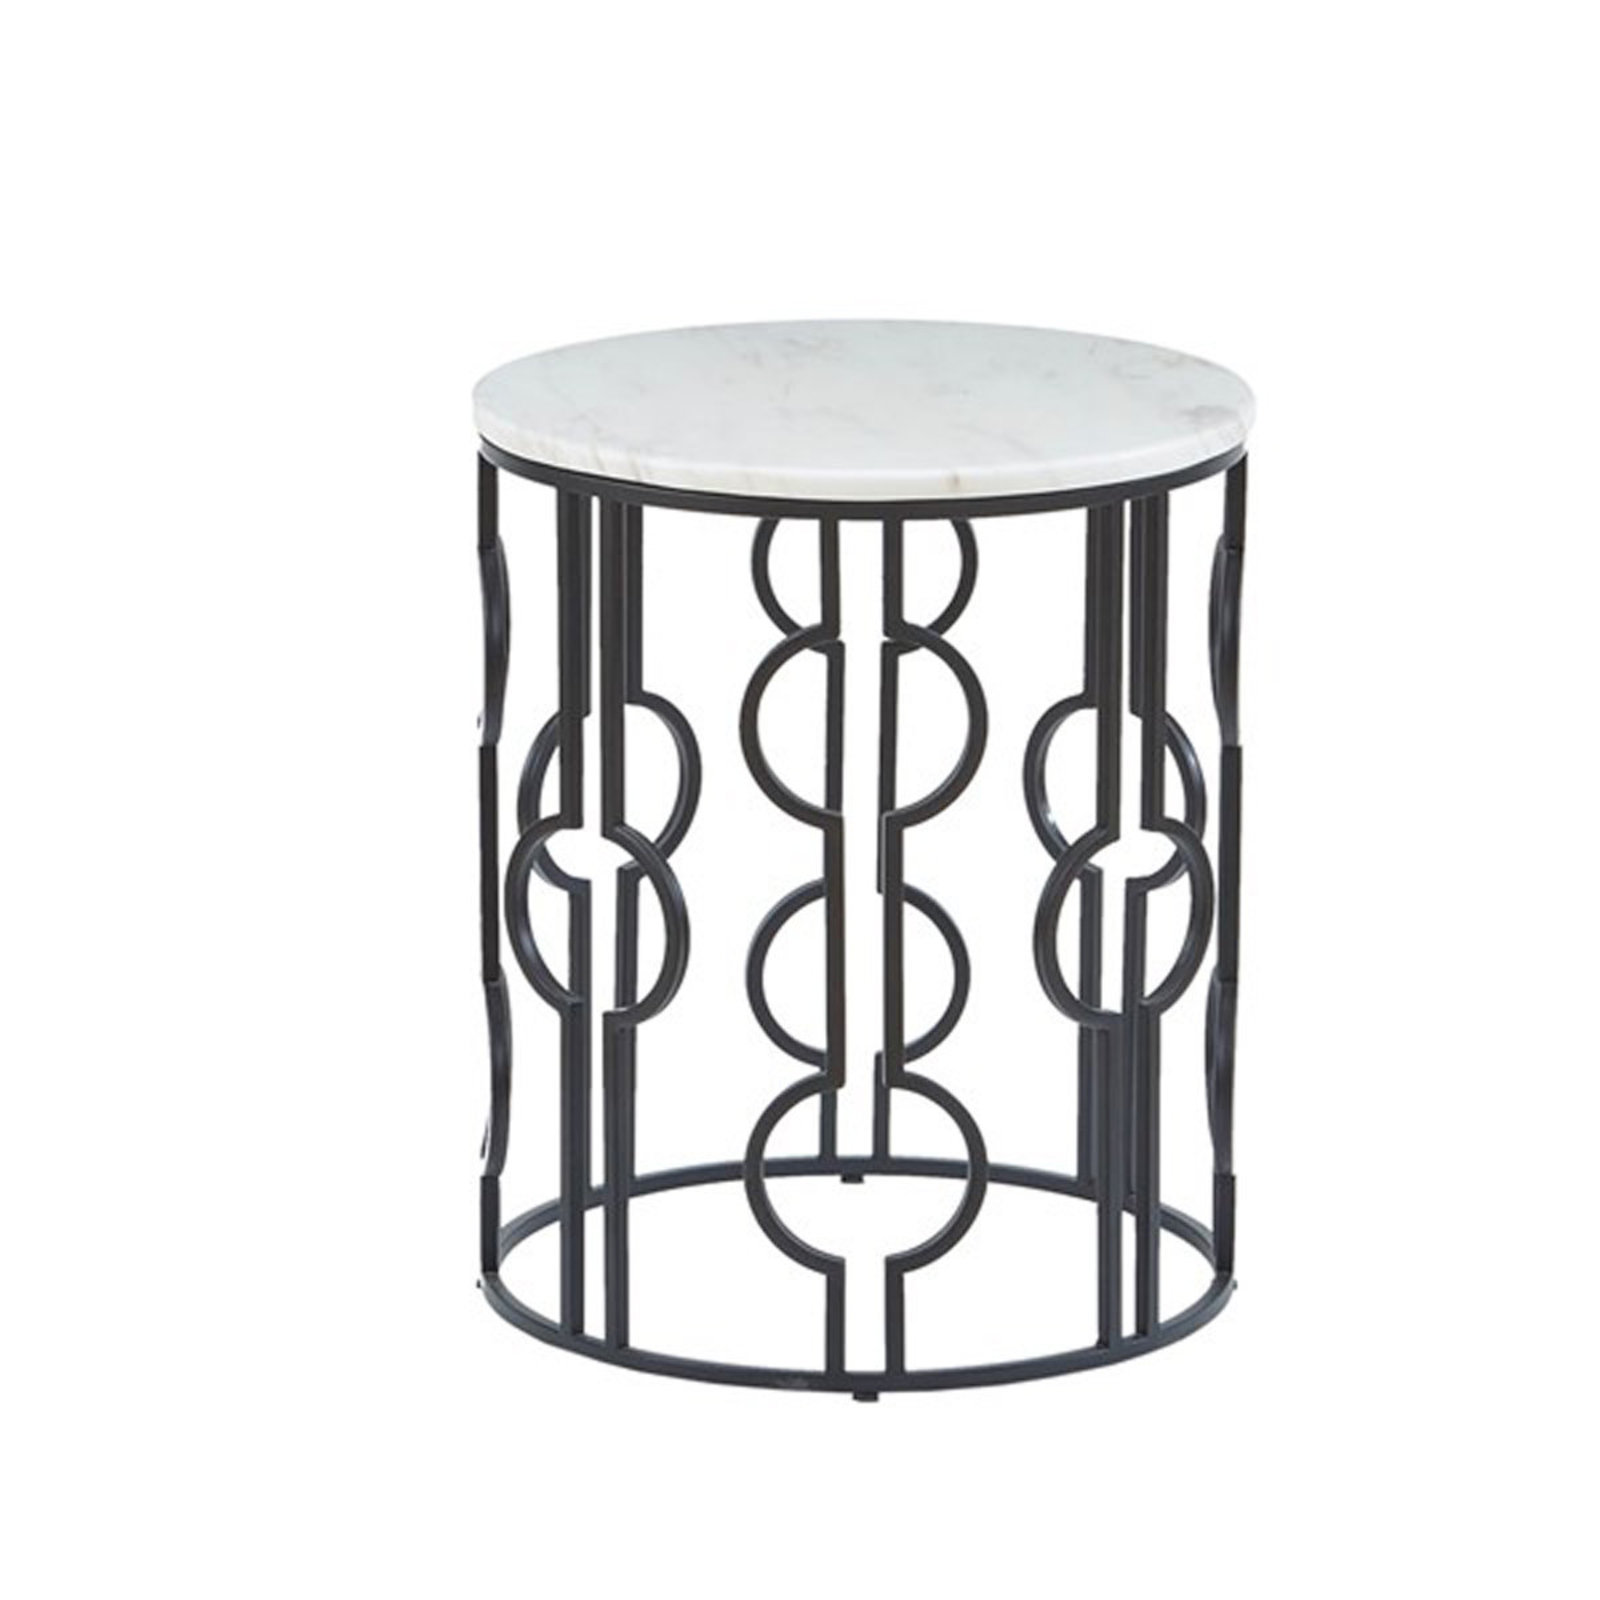 modern circular accent table shades light white black and marble coastal inspired chandeliers cute high top kitchen chairs how met your mother umbrella pottery barn square coffee